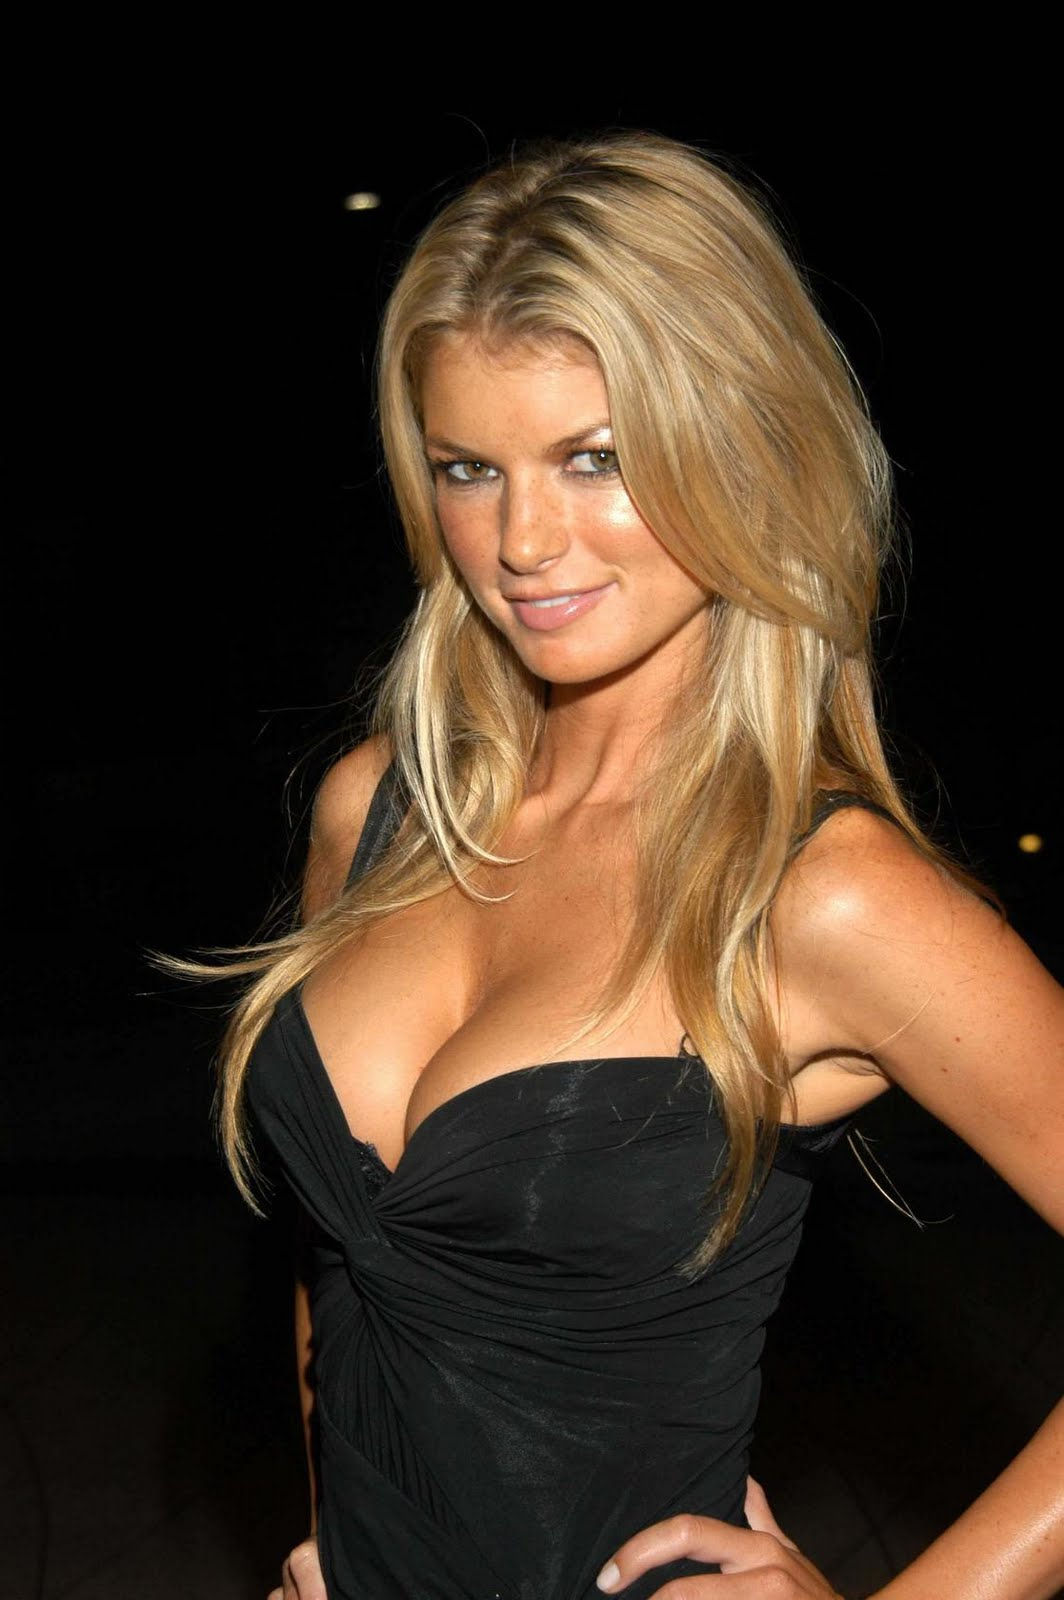 Download this Marisa Miller Hot... picture